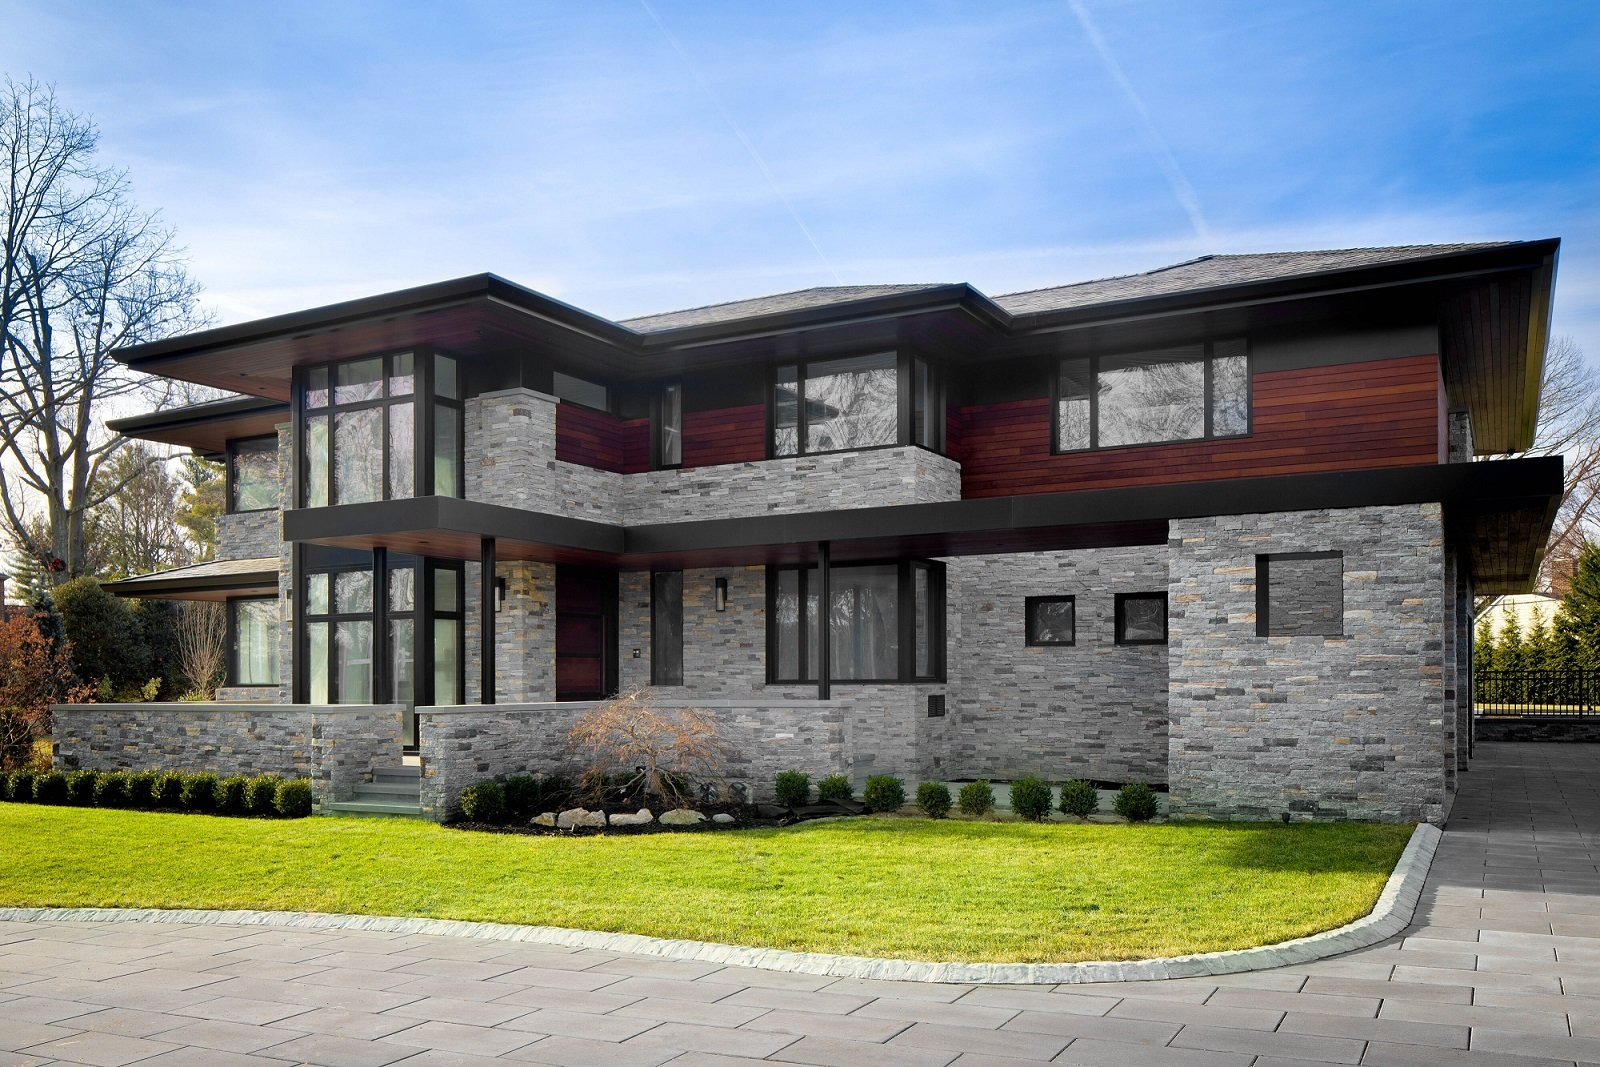 Exterior, House Building Type, Hipped RoofLine, Wood Siding Material, Stone Siding Material, and Shingles Roof Material Front Exterior  The Manhasset House by Node Architecture, Engineering, Consulting P.C.